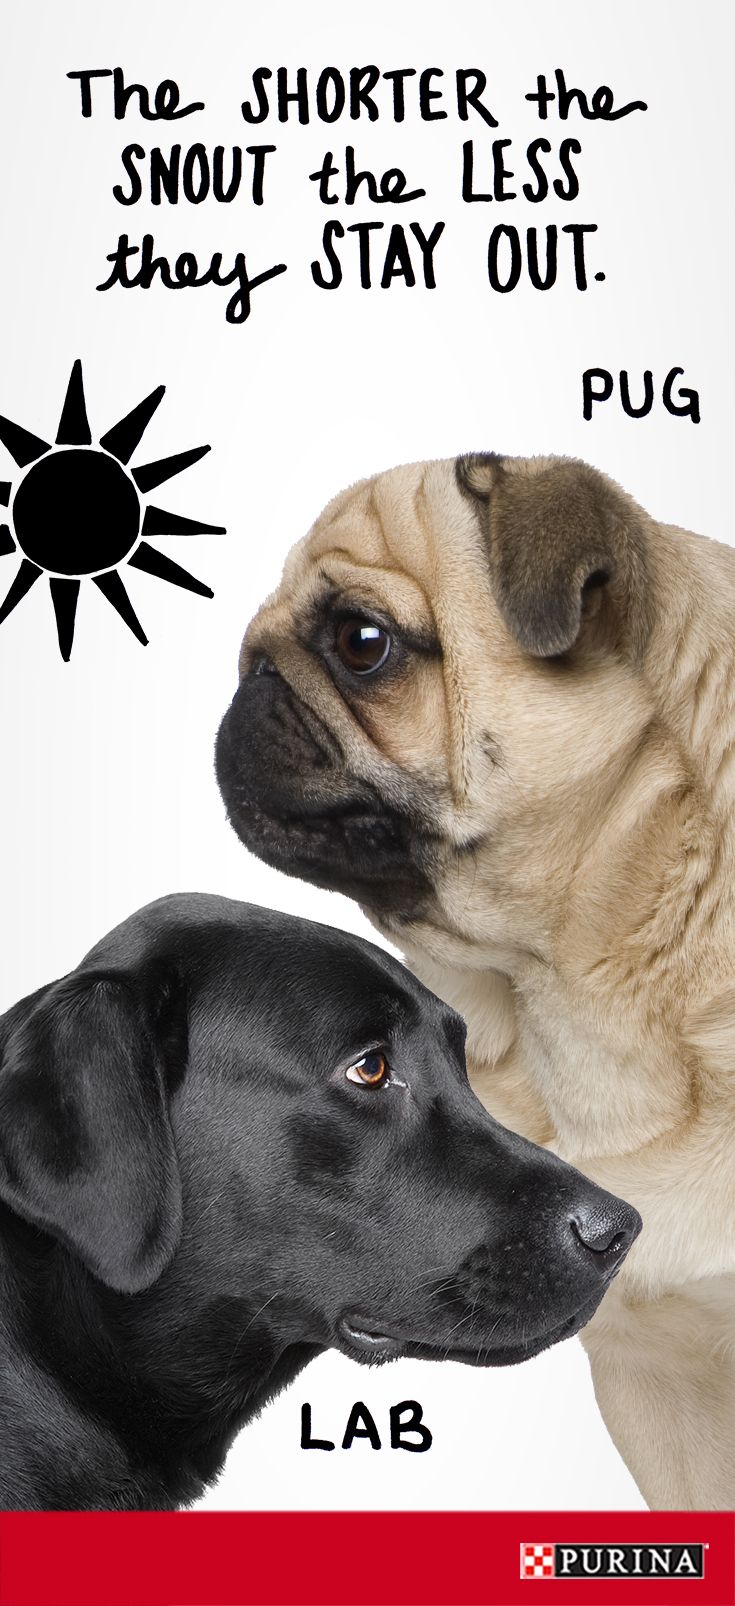 Worried about your dog overheating? Did you know that certain dog breeds are more prone to overheating based on the size of their snout? Short-nosed dogs like Pugs have a harder time panting to cool off than longer nosed dog breeds like labs.